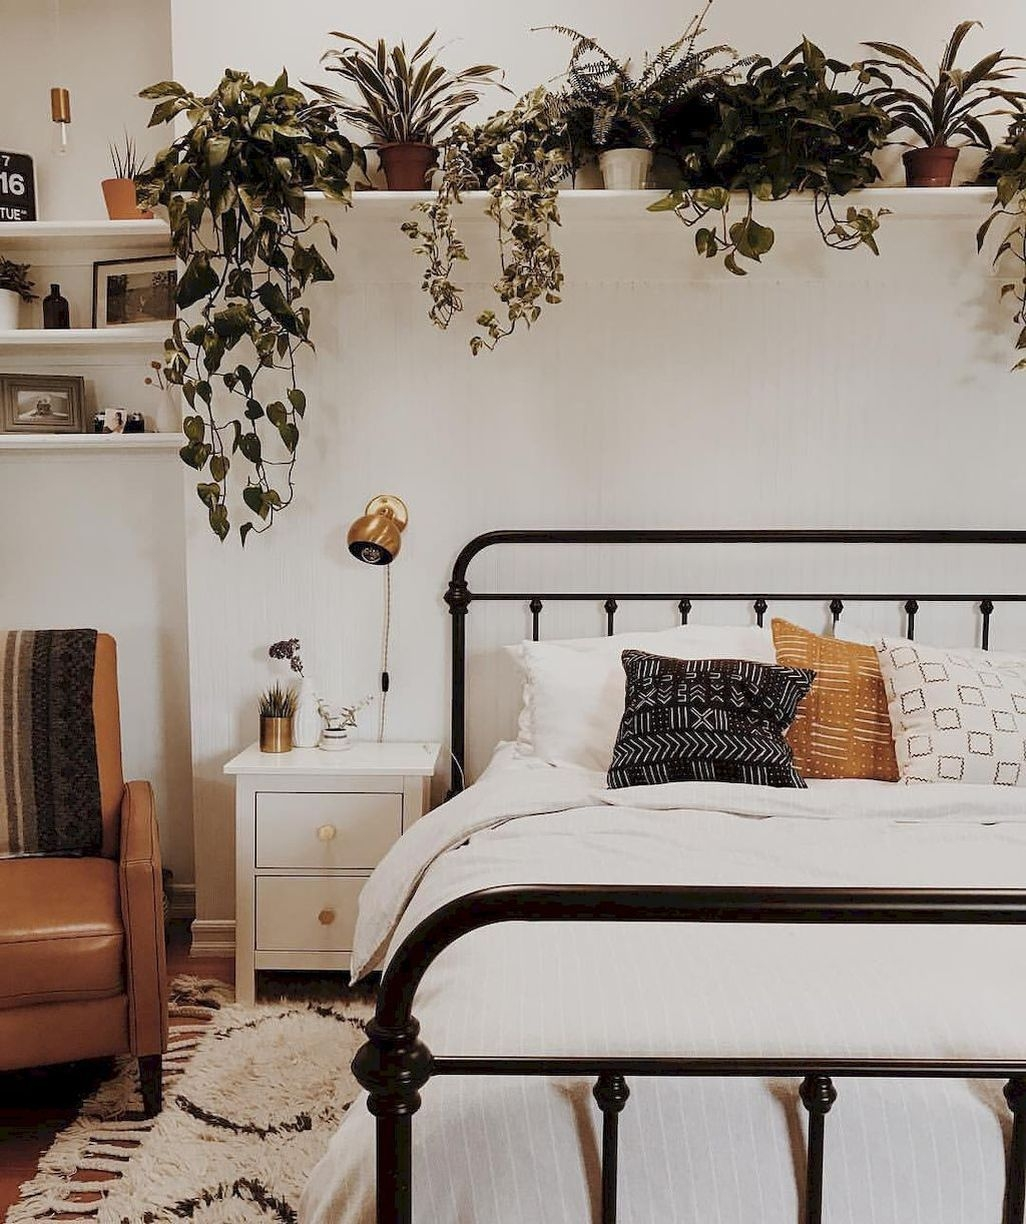 Cheapest Apartments: 49 Affordable First Apartment Decorating Ideas On A Budget